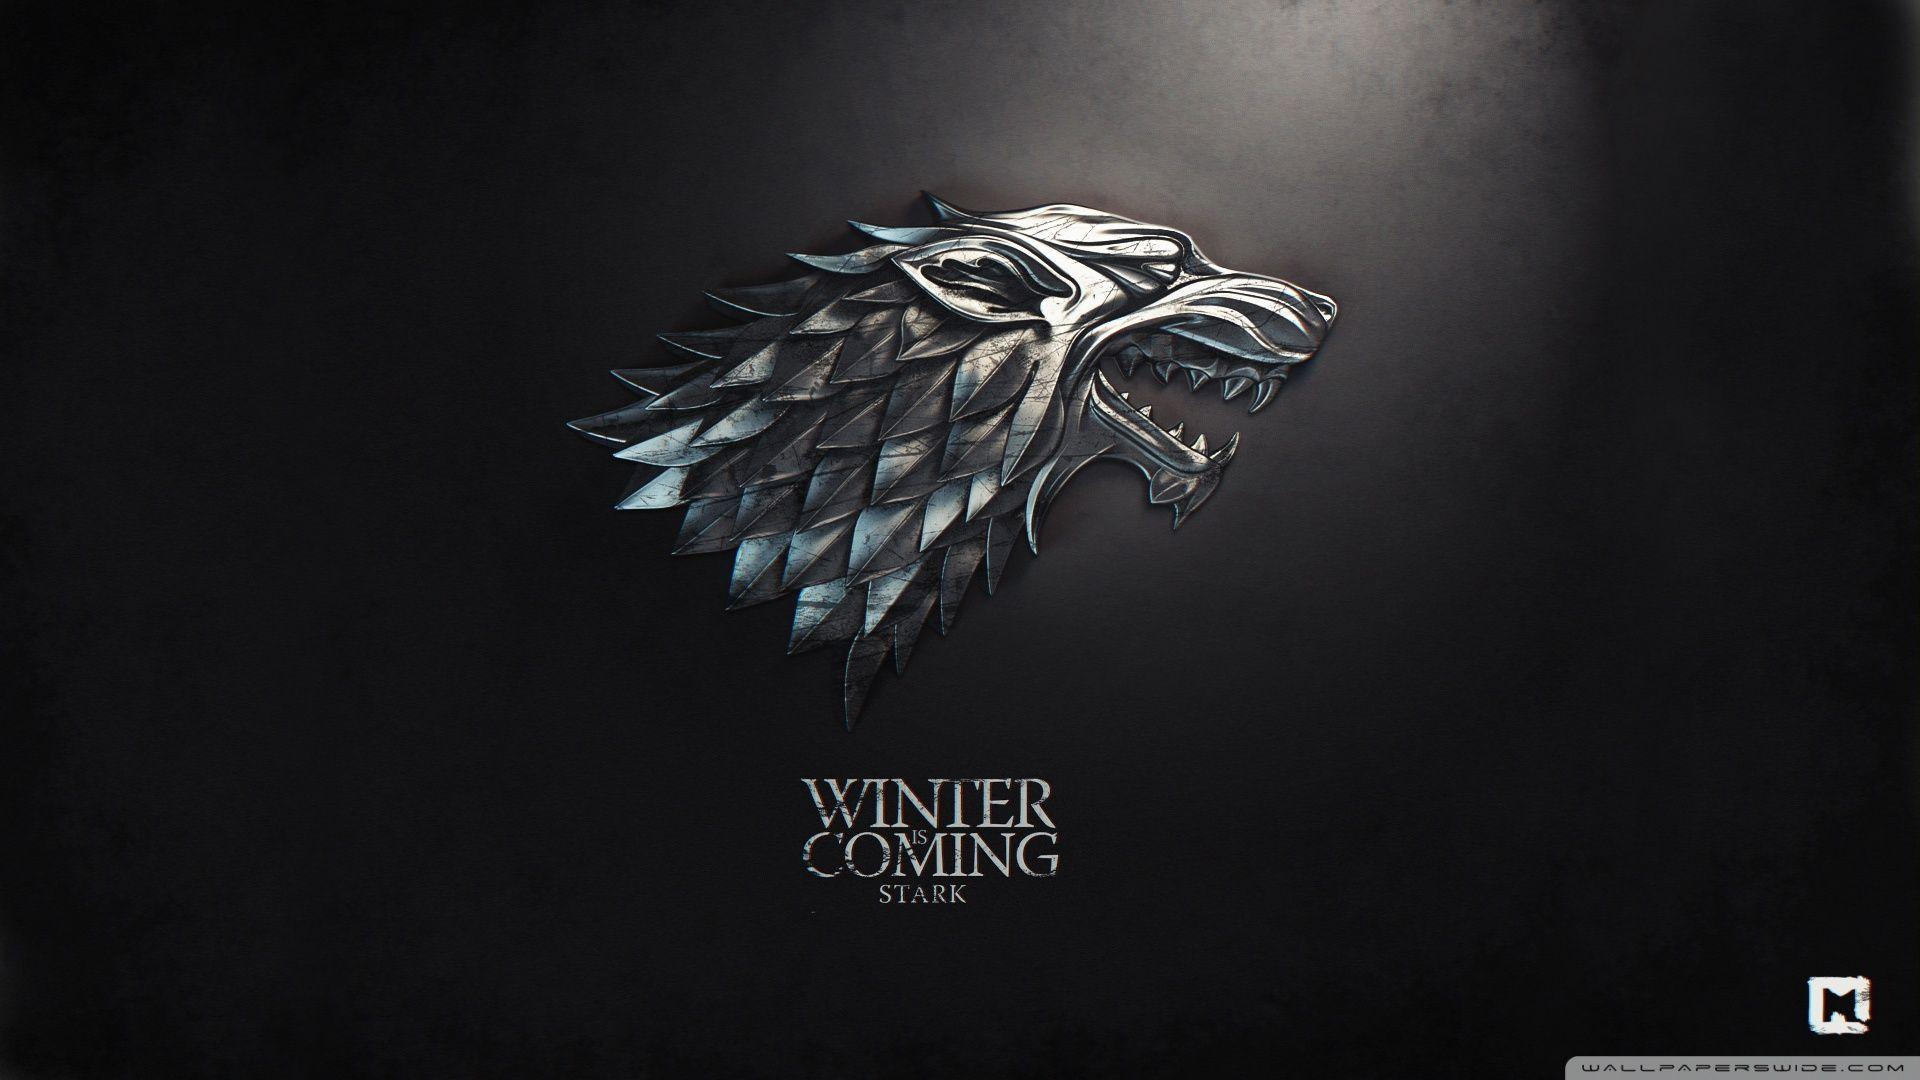 WallpapersWide ❤ Game of Thrones HD Desktop Wallpapers for 4K